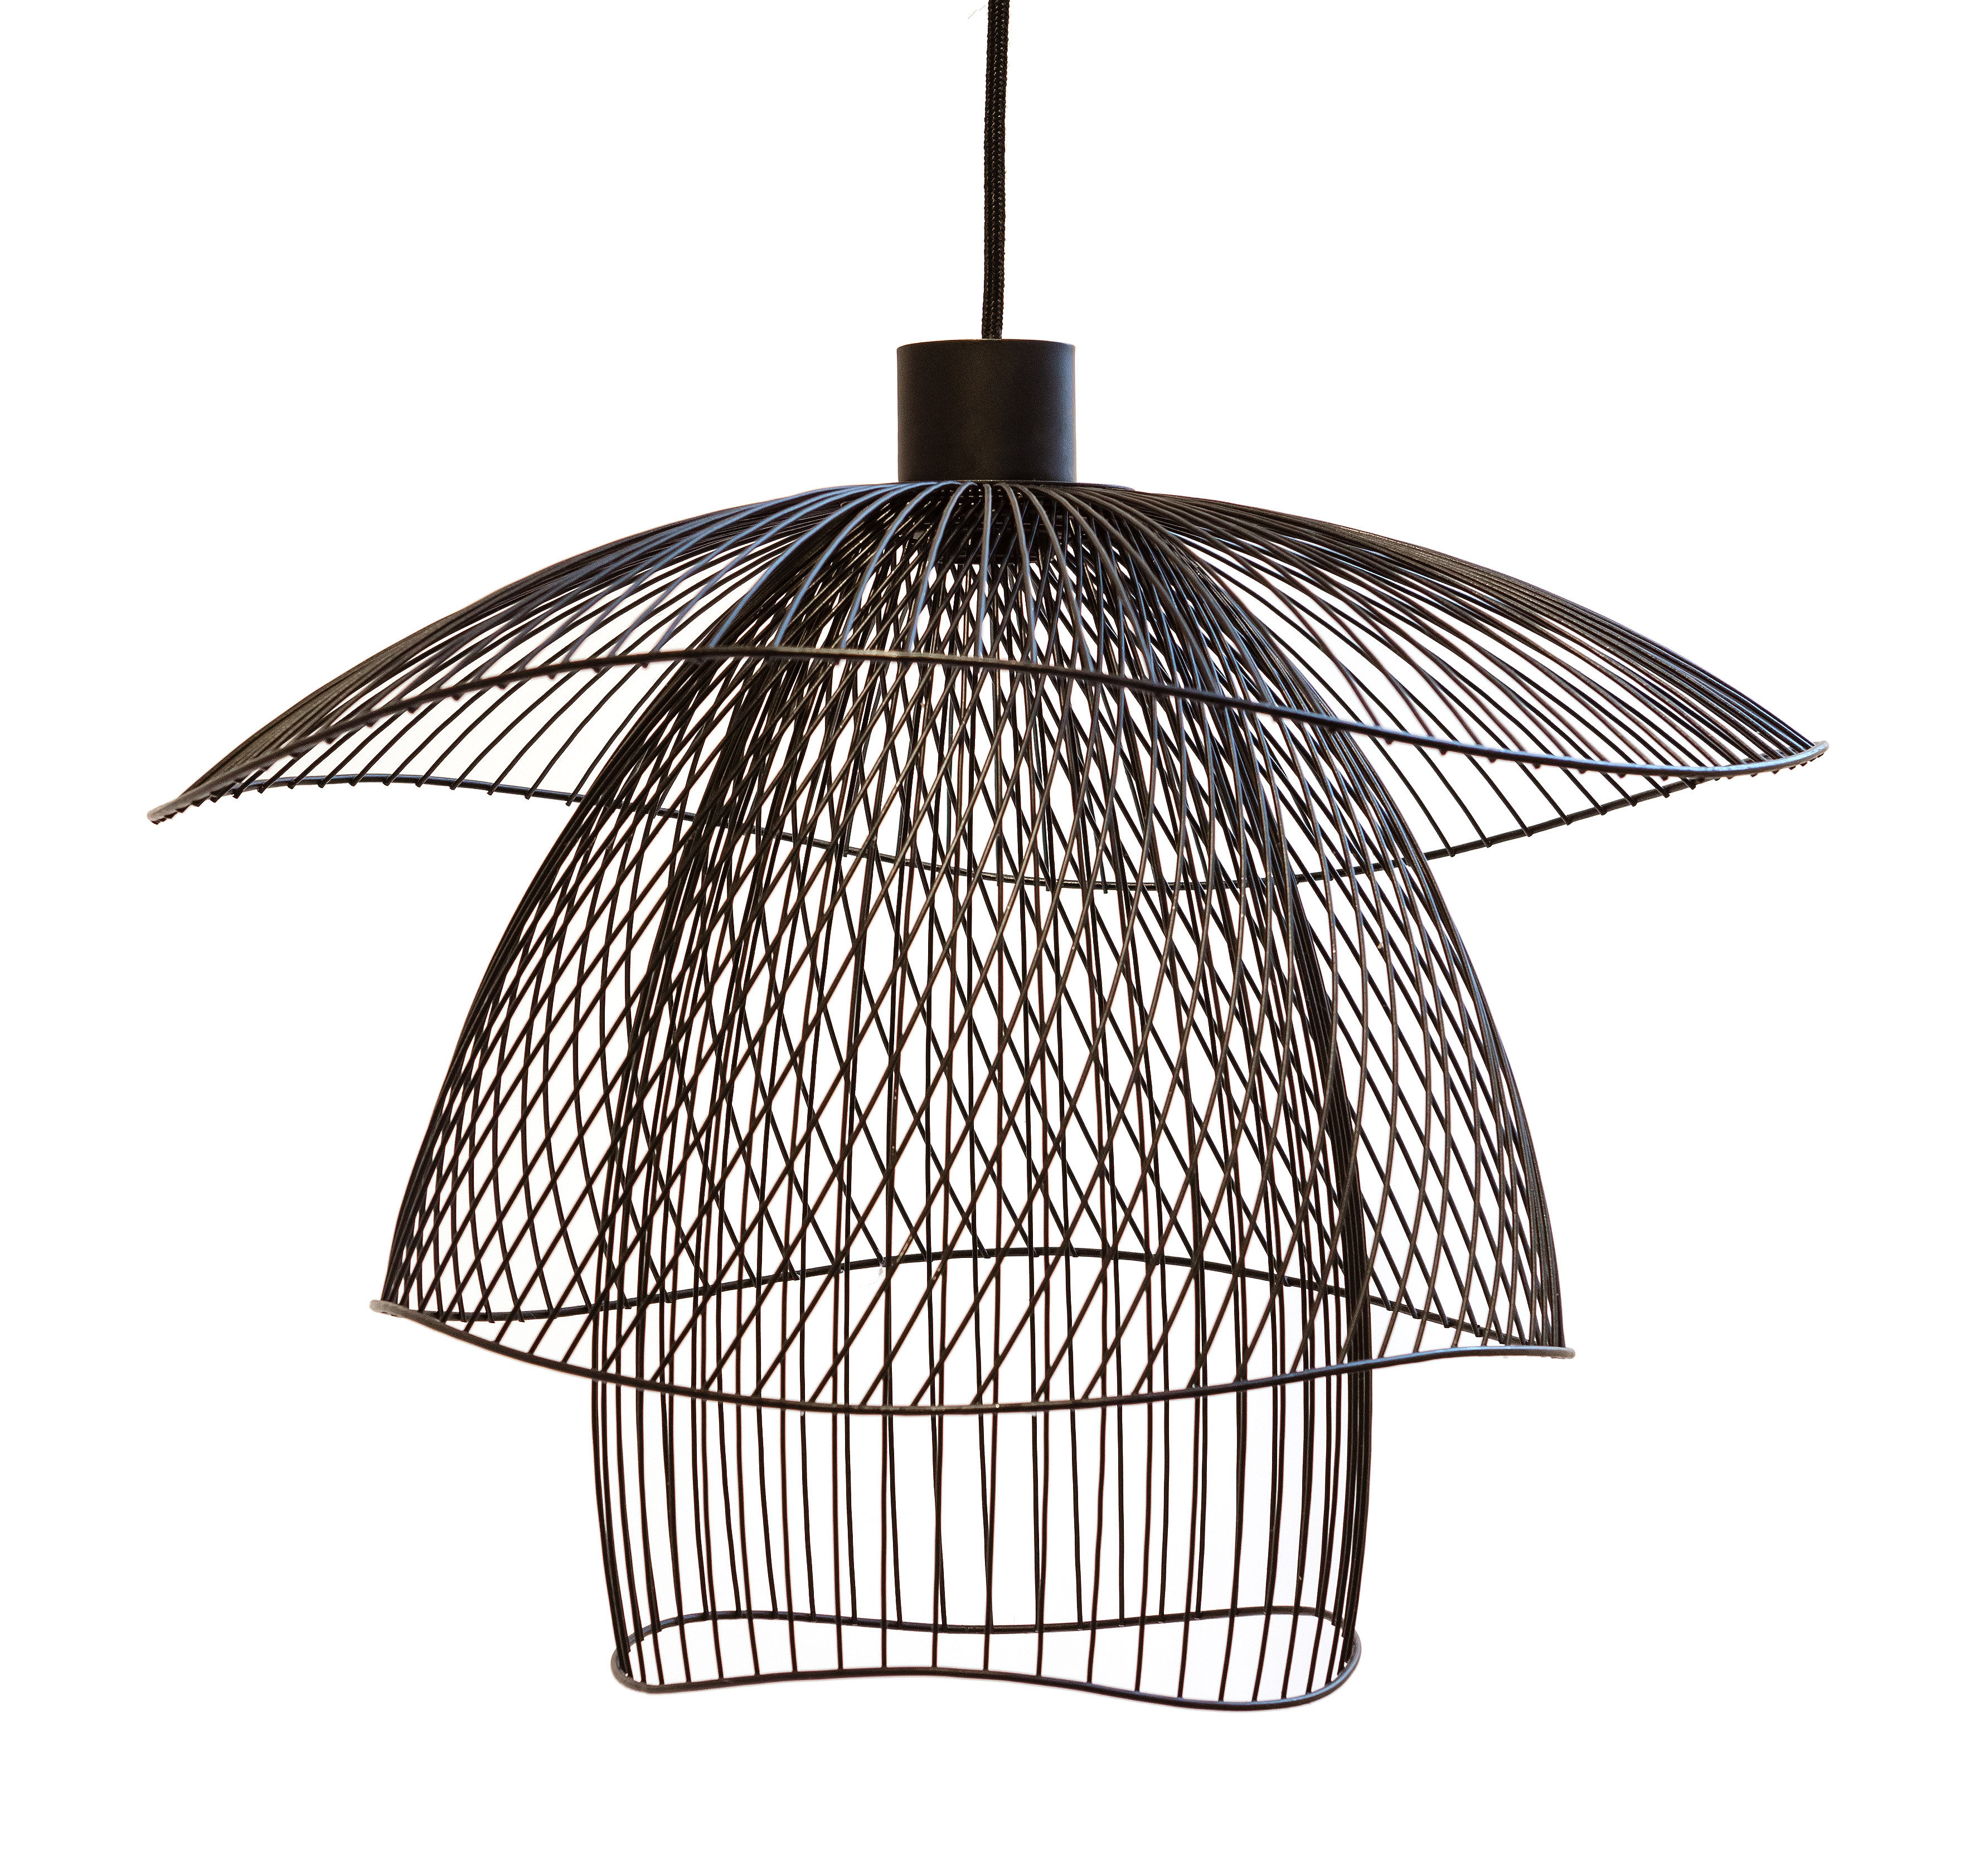 Luminaire - Suspensions - Suspension Papillon Small / Ø 56 cm - Forestier - Noir - Acier thermolaqué